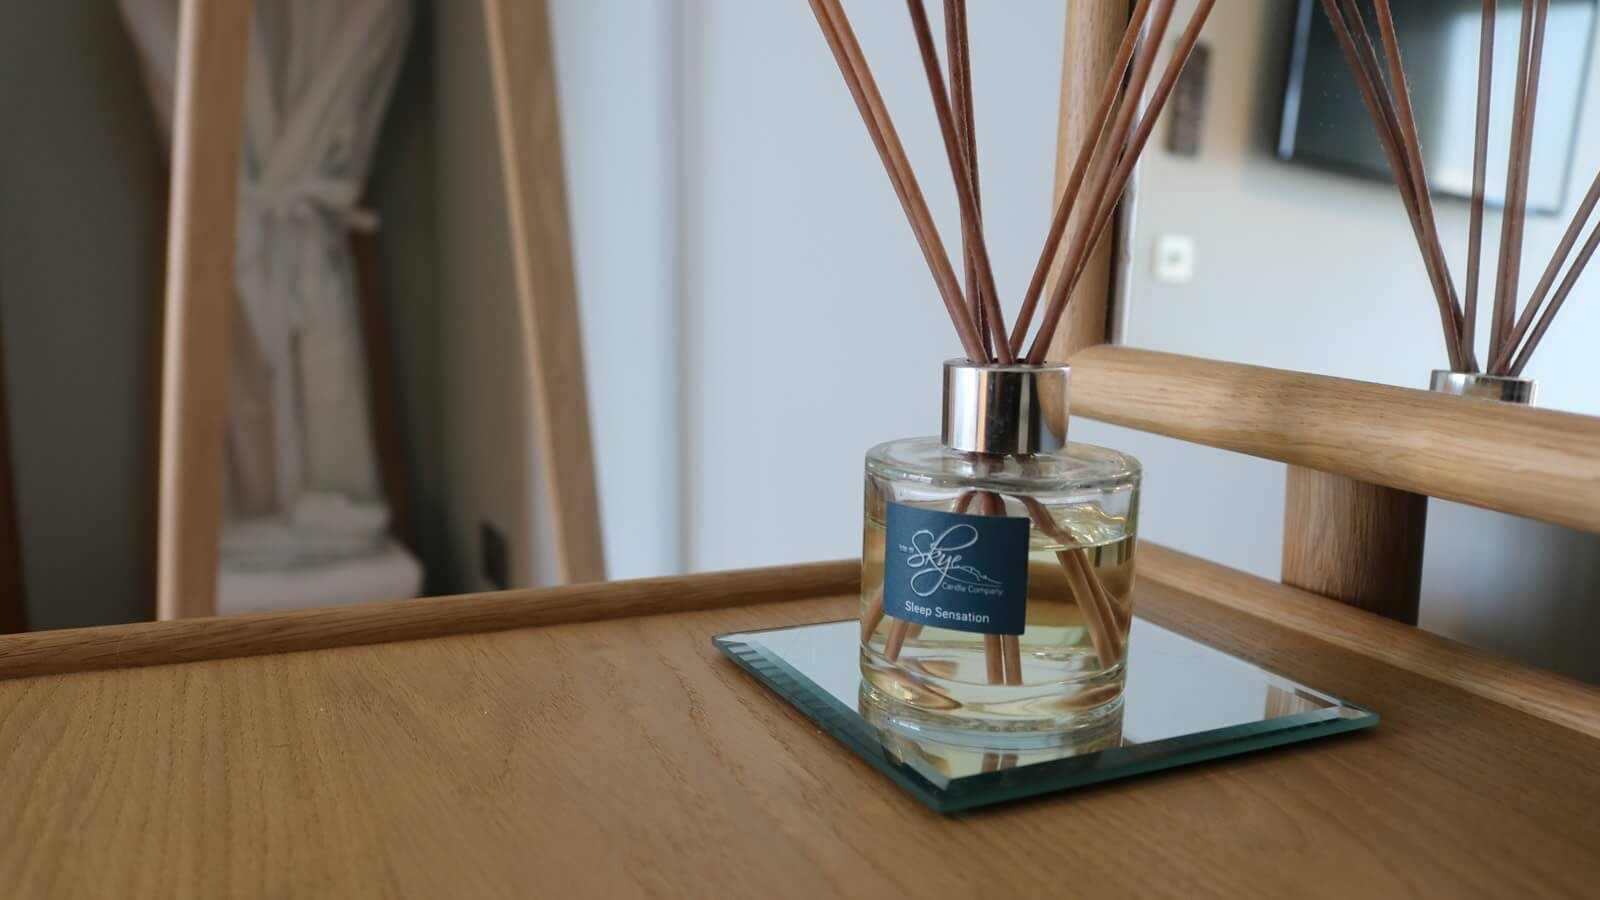 Skye Candle Company room scent diffuser